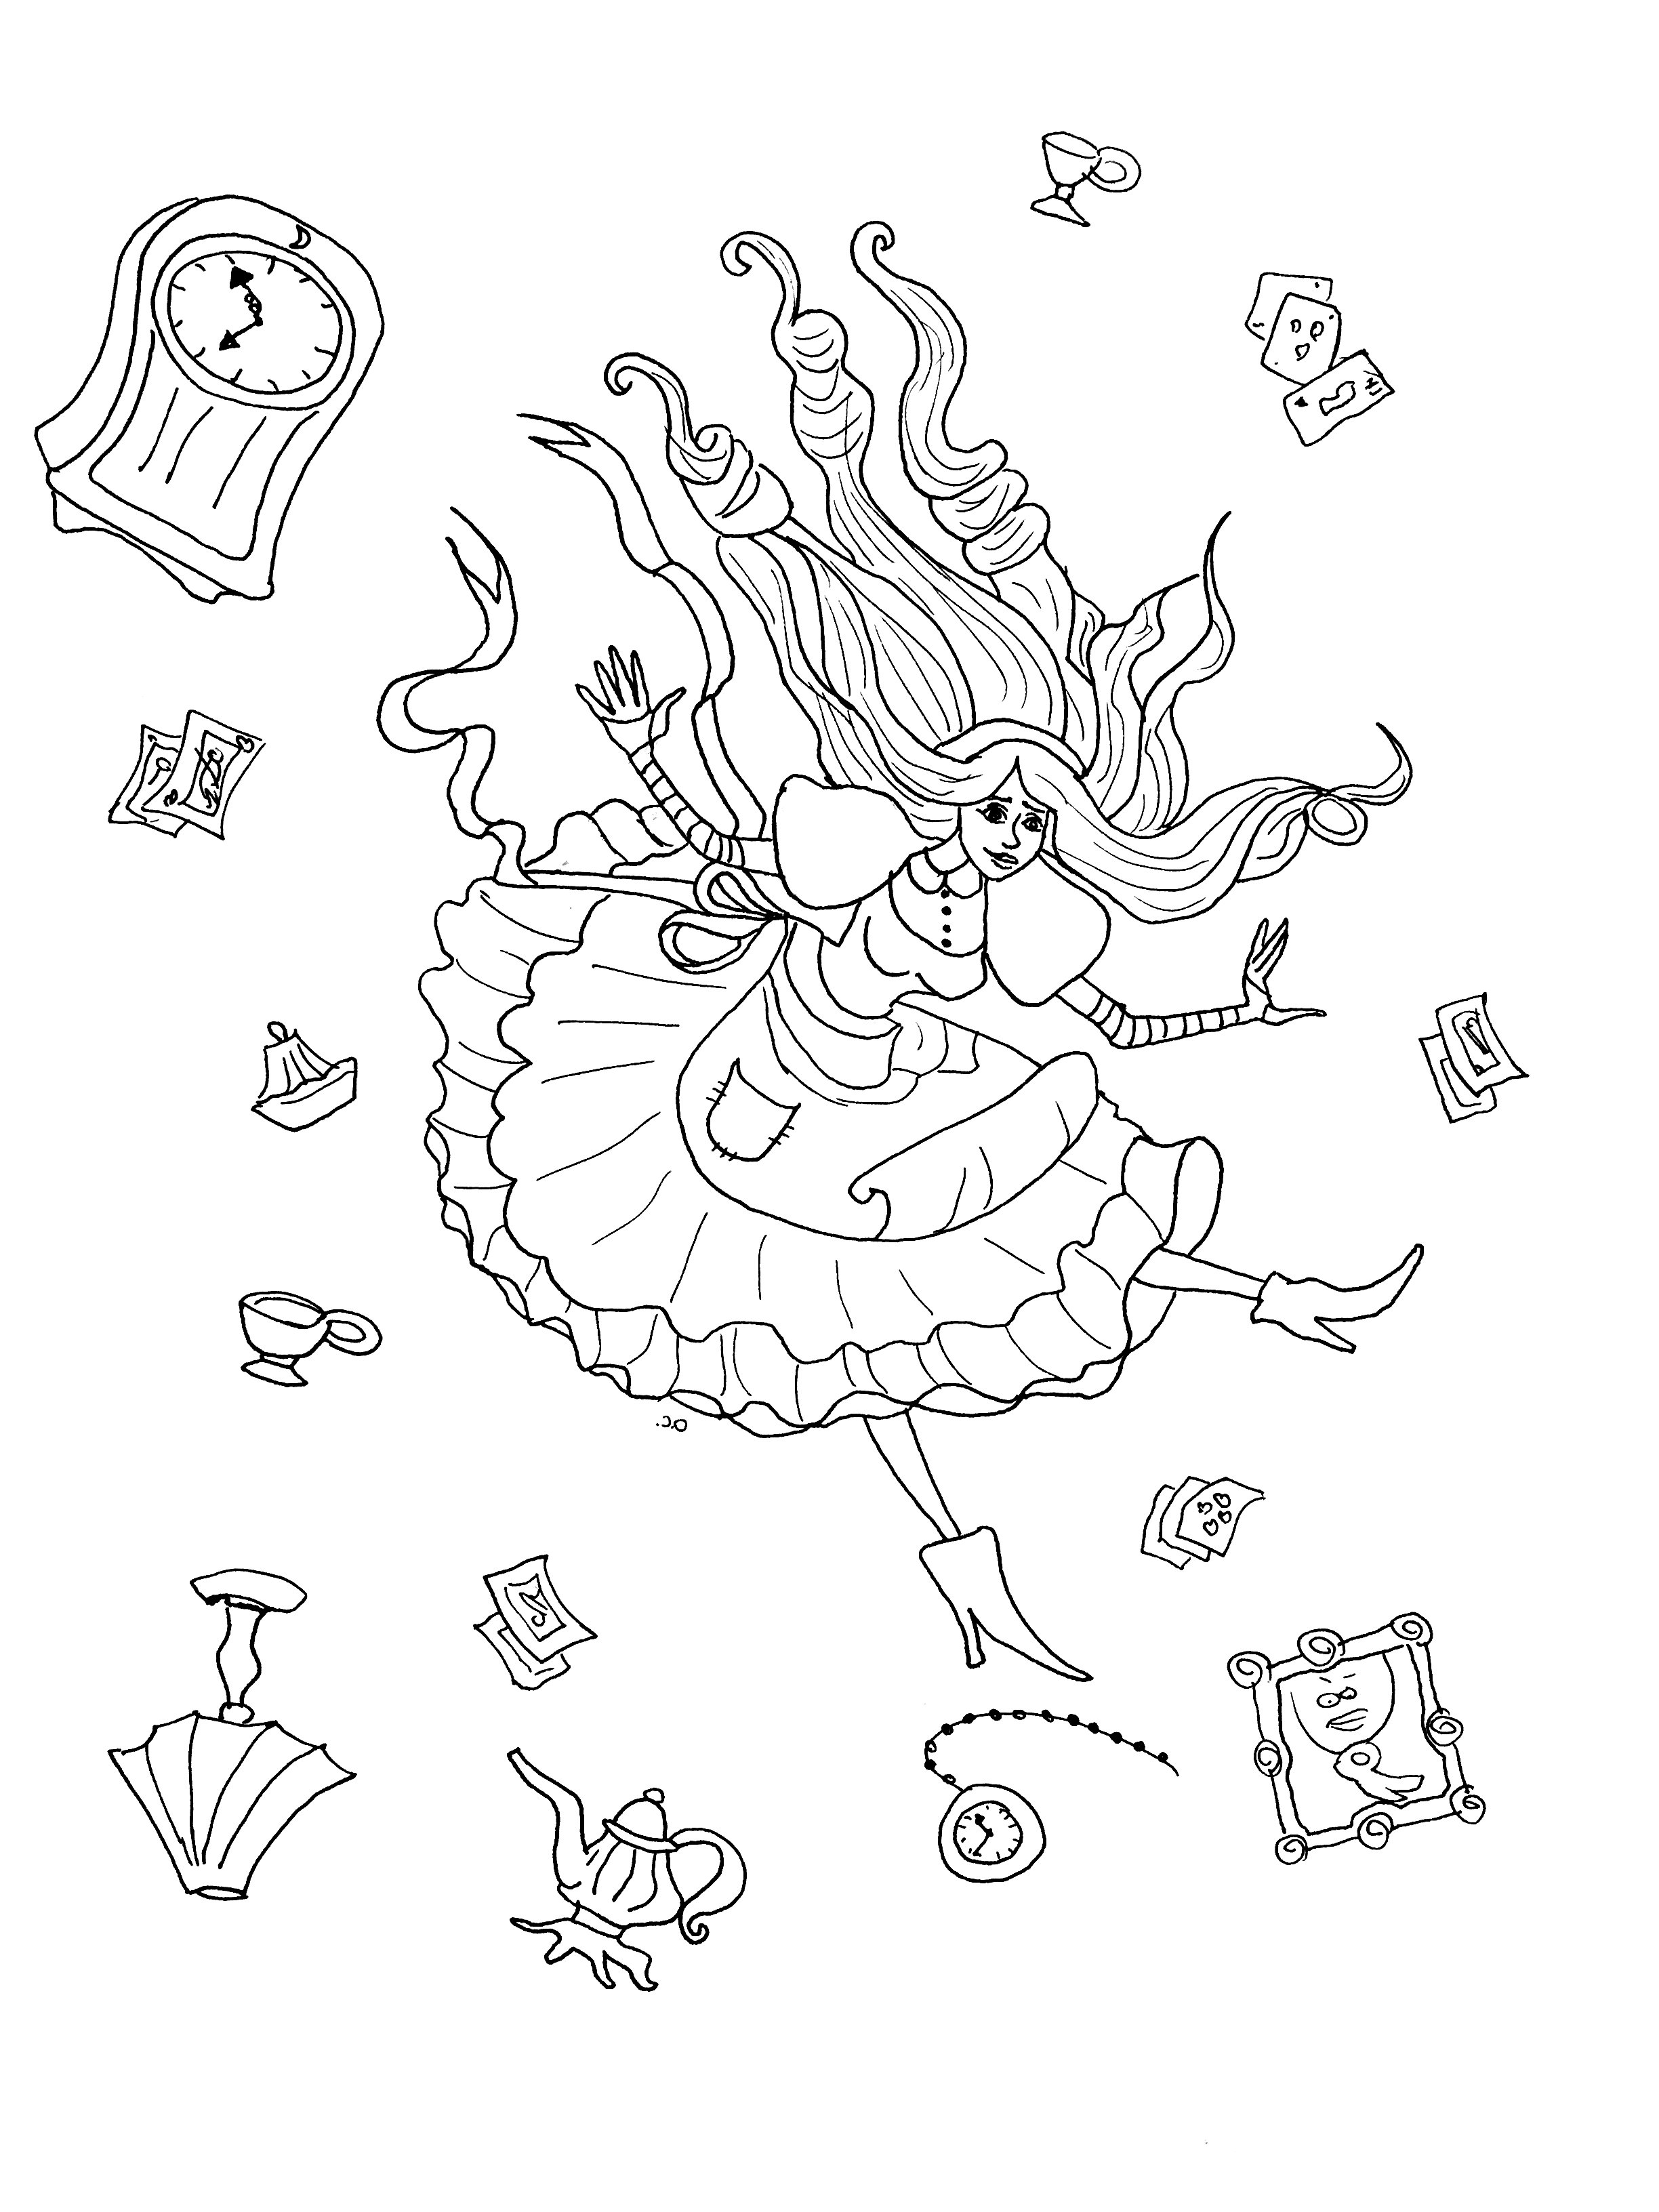 Alice coloring page to print and color